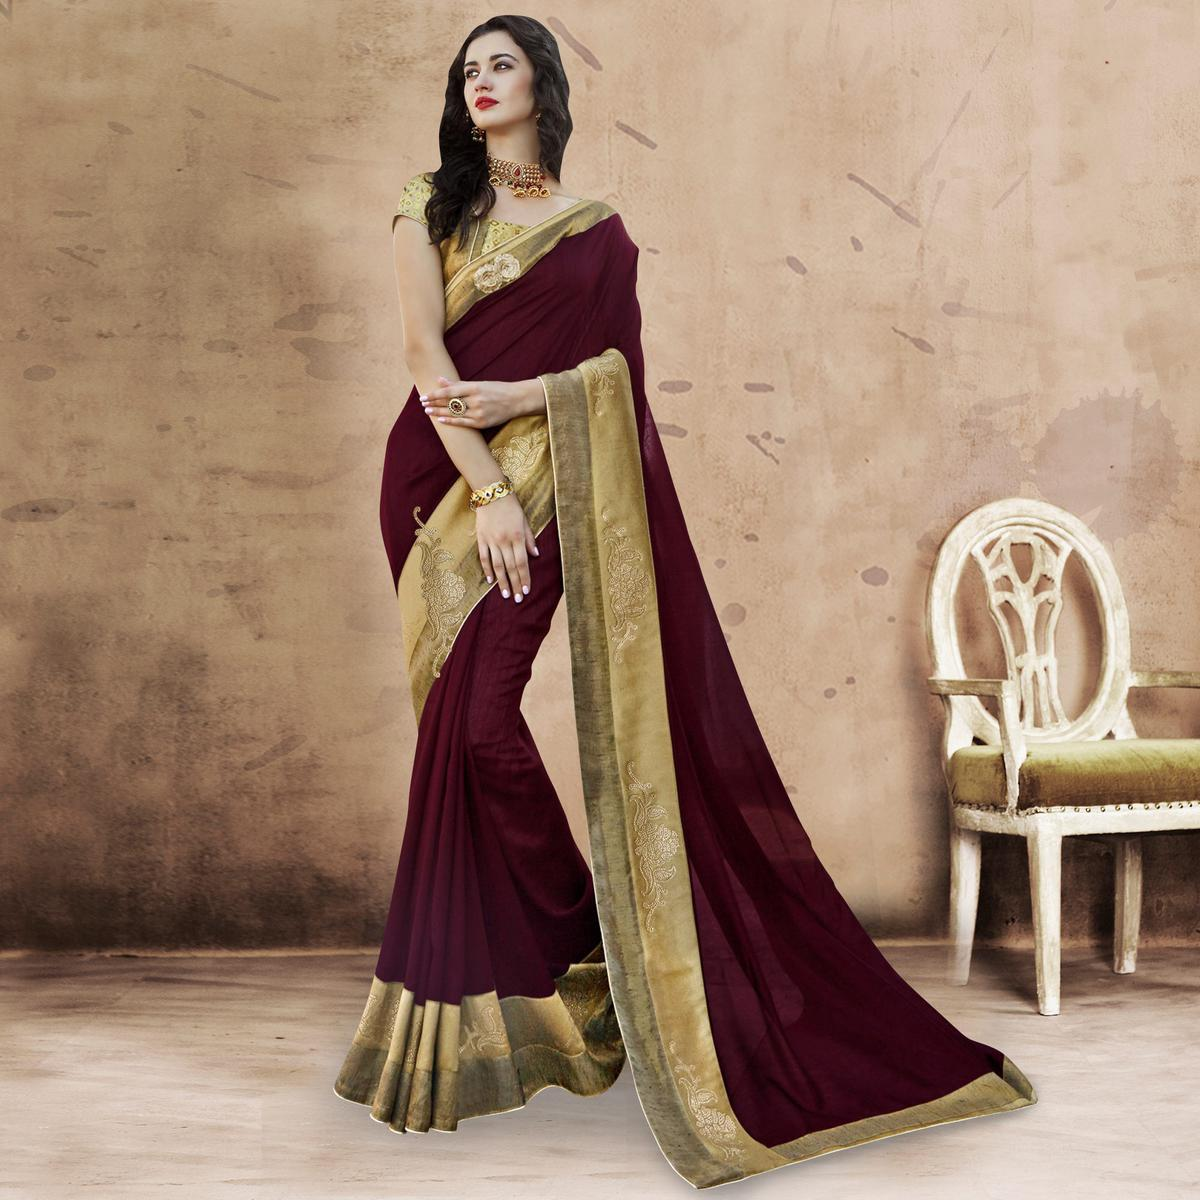 16270a0408 Buy Glorious Wine Colored Party Wear Embroidered Chanderi Silk Saree for  womens online India, Best Prices, Reviews - Peachmode